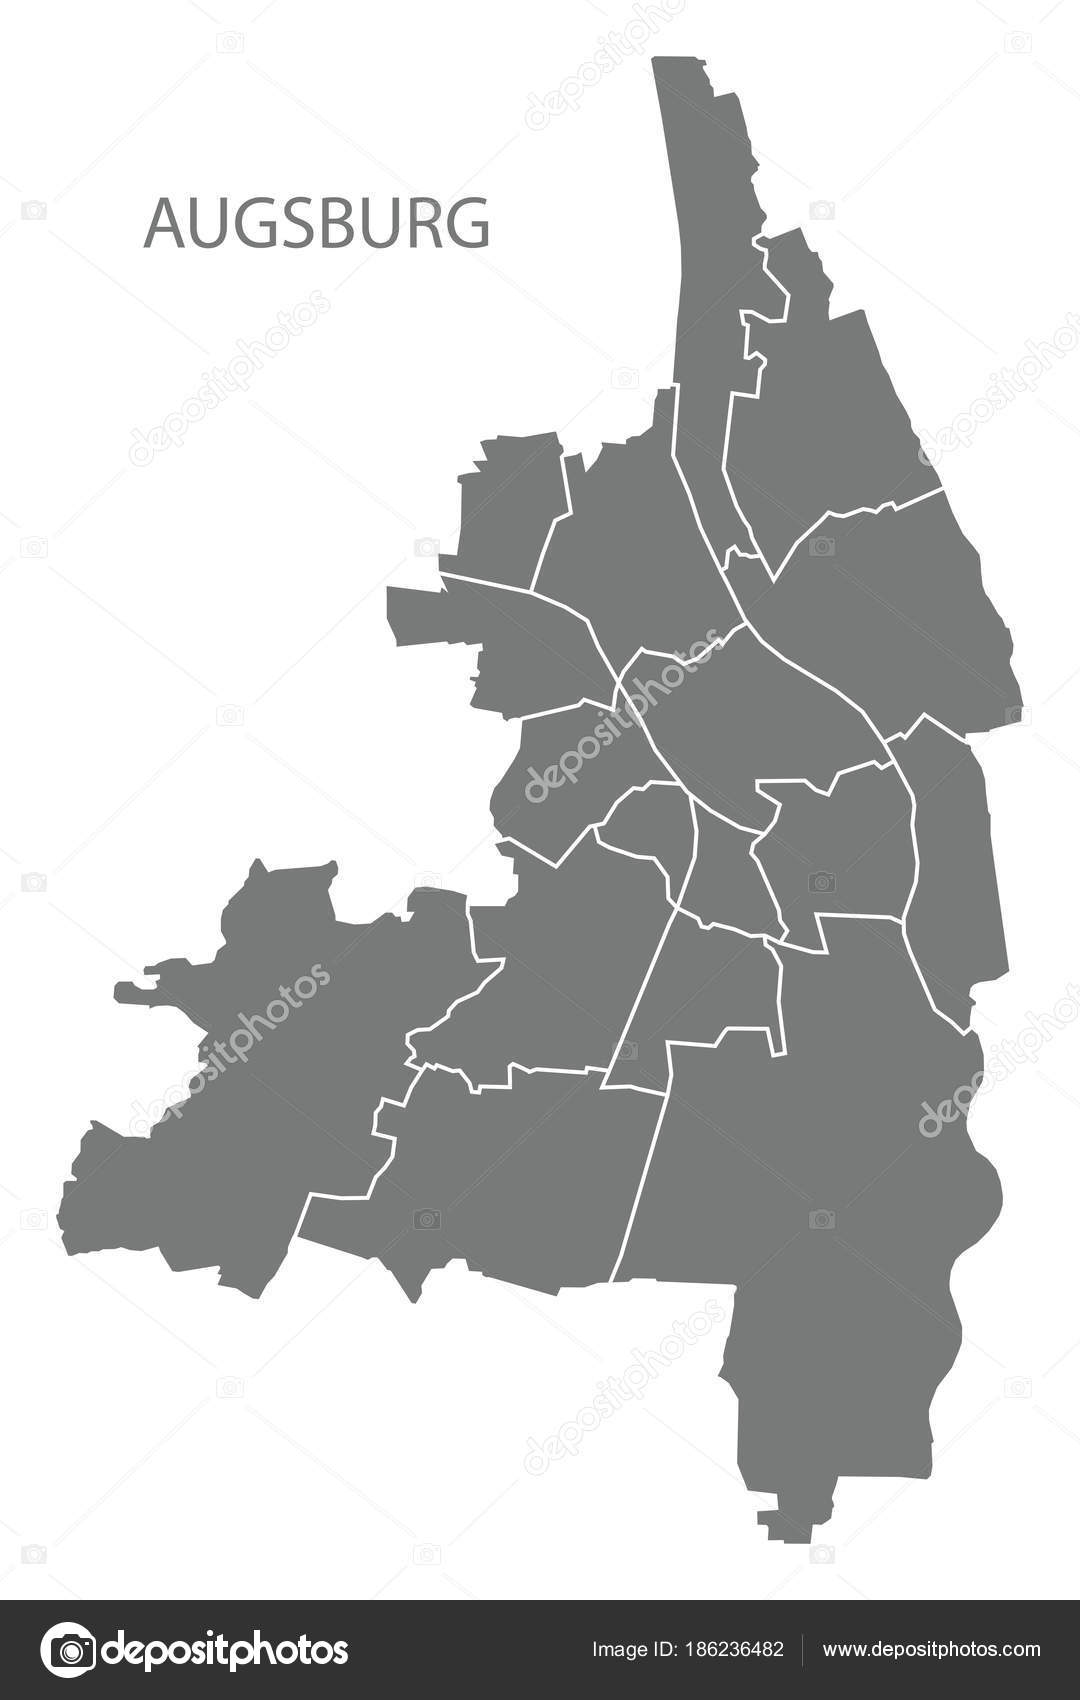 Augsburg city map with boroughs grey illustration silhouette sha